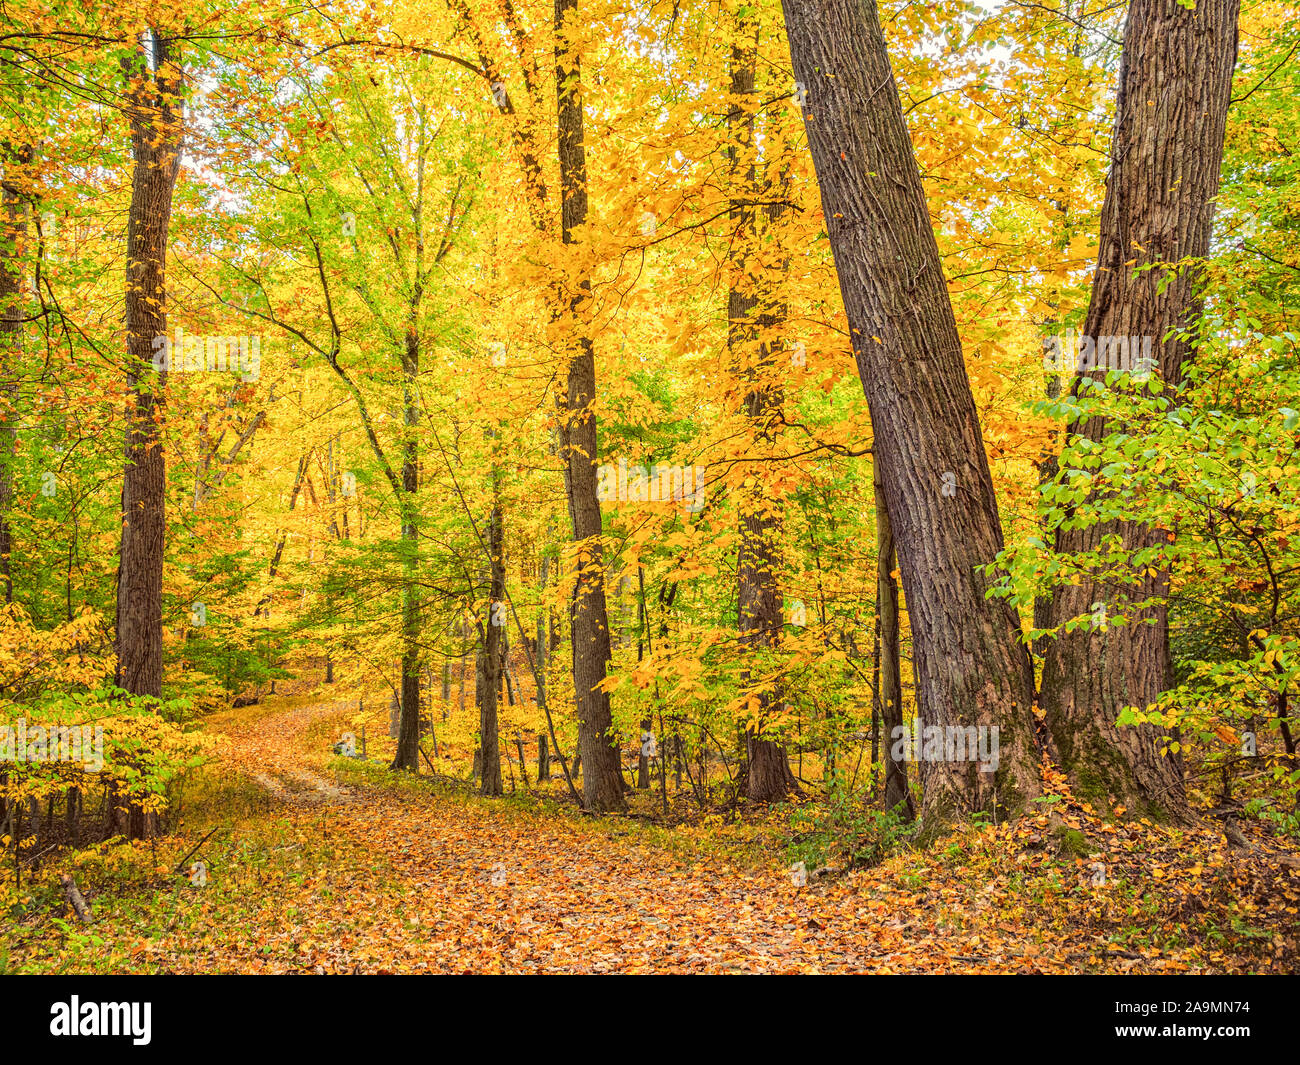 East coast fall color. Golden yellow autumn leaves carpet a hiking trail in Westchester County New York, Rockefeller State Park Preserve, Pleasanville Stock Photo